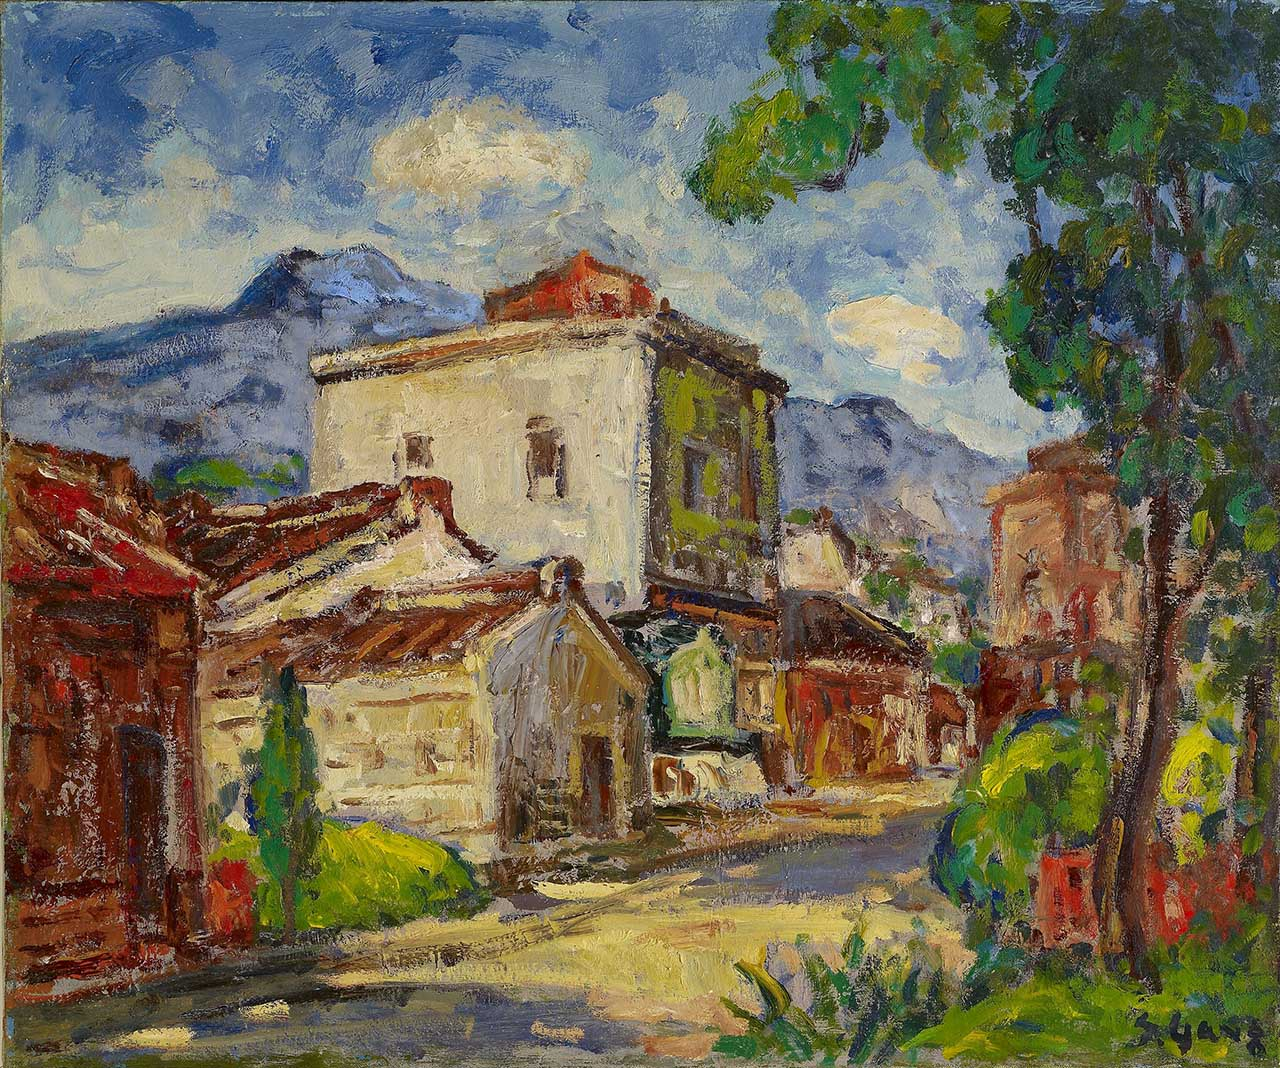 Tamsui Oil on canvas 61x73 cm